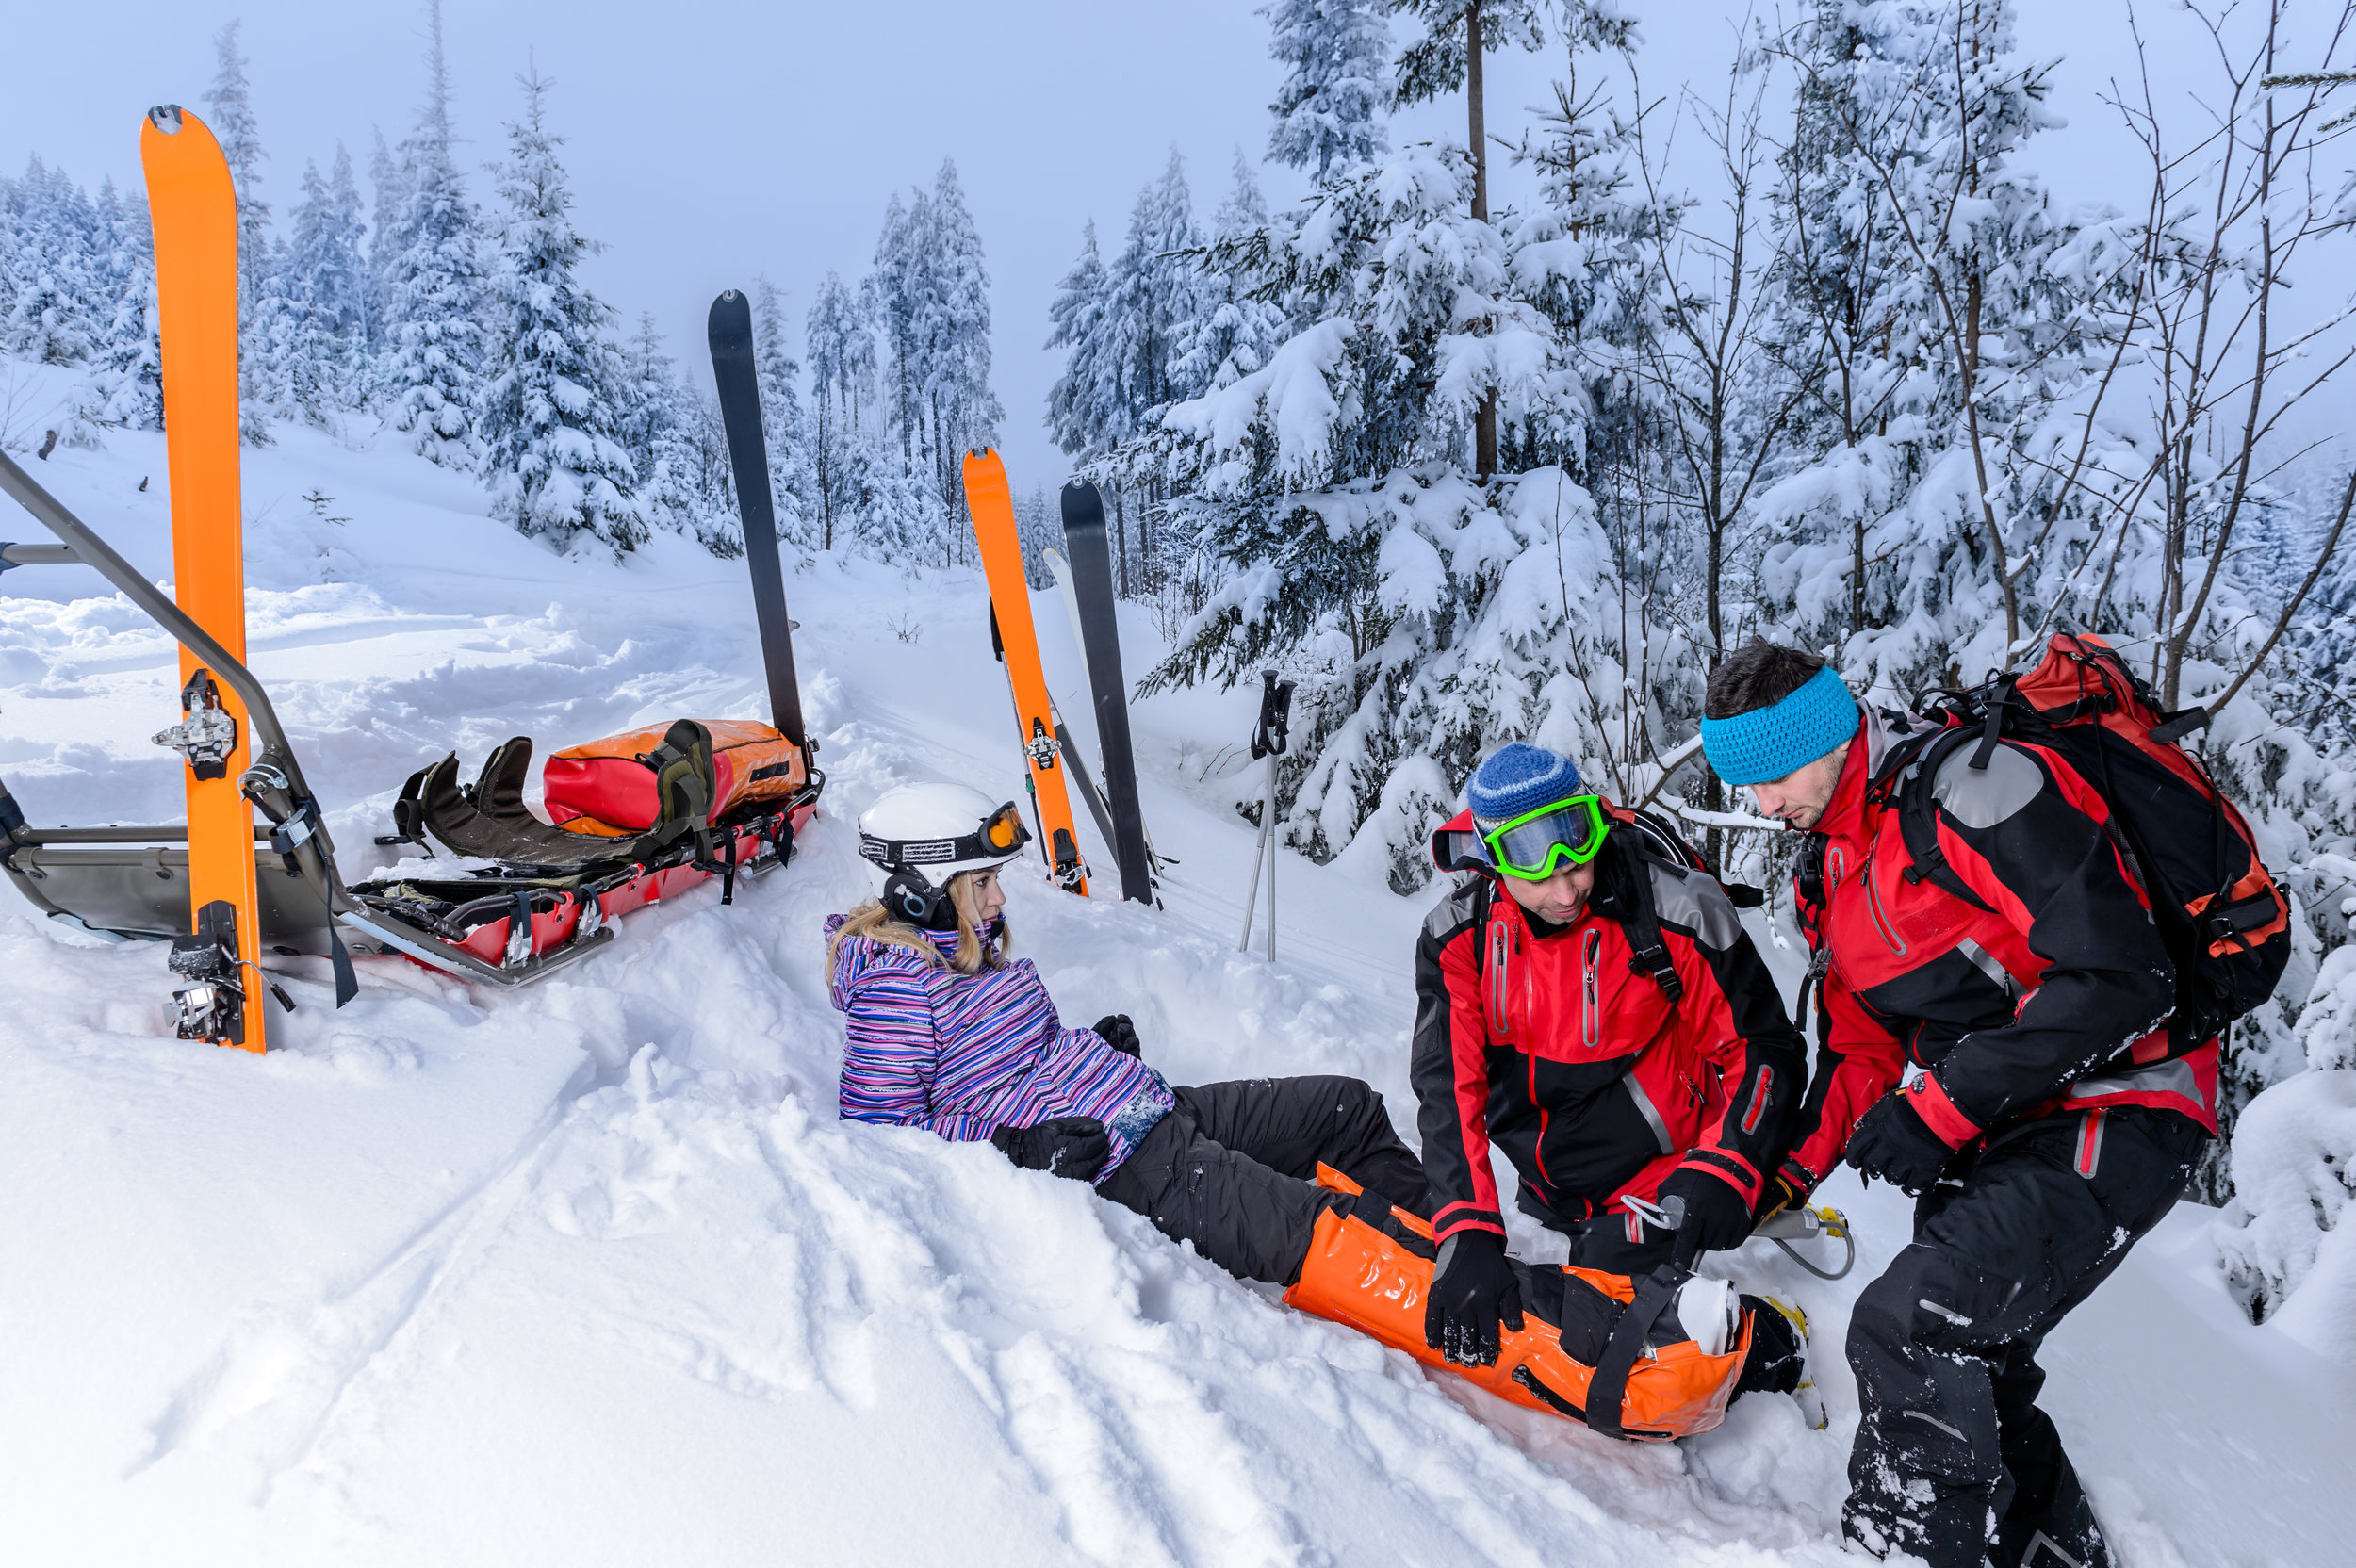 Knee ligament injuries are the most common ski injury! - Prepare yourself better this winter and AVOID this painful experience